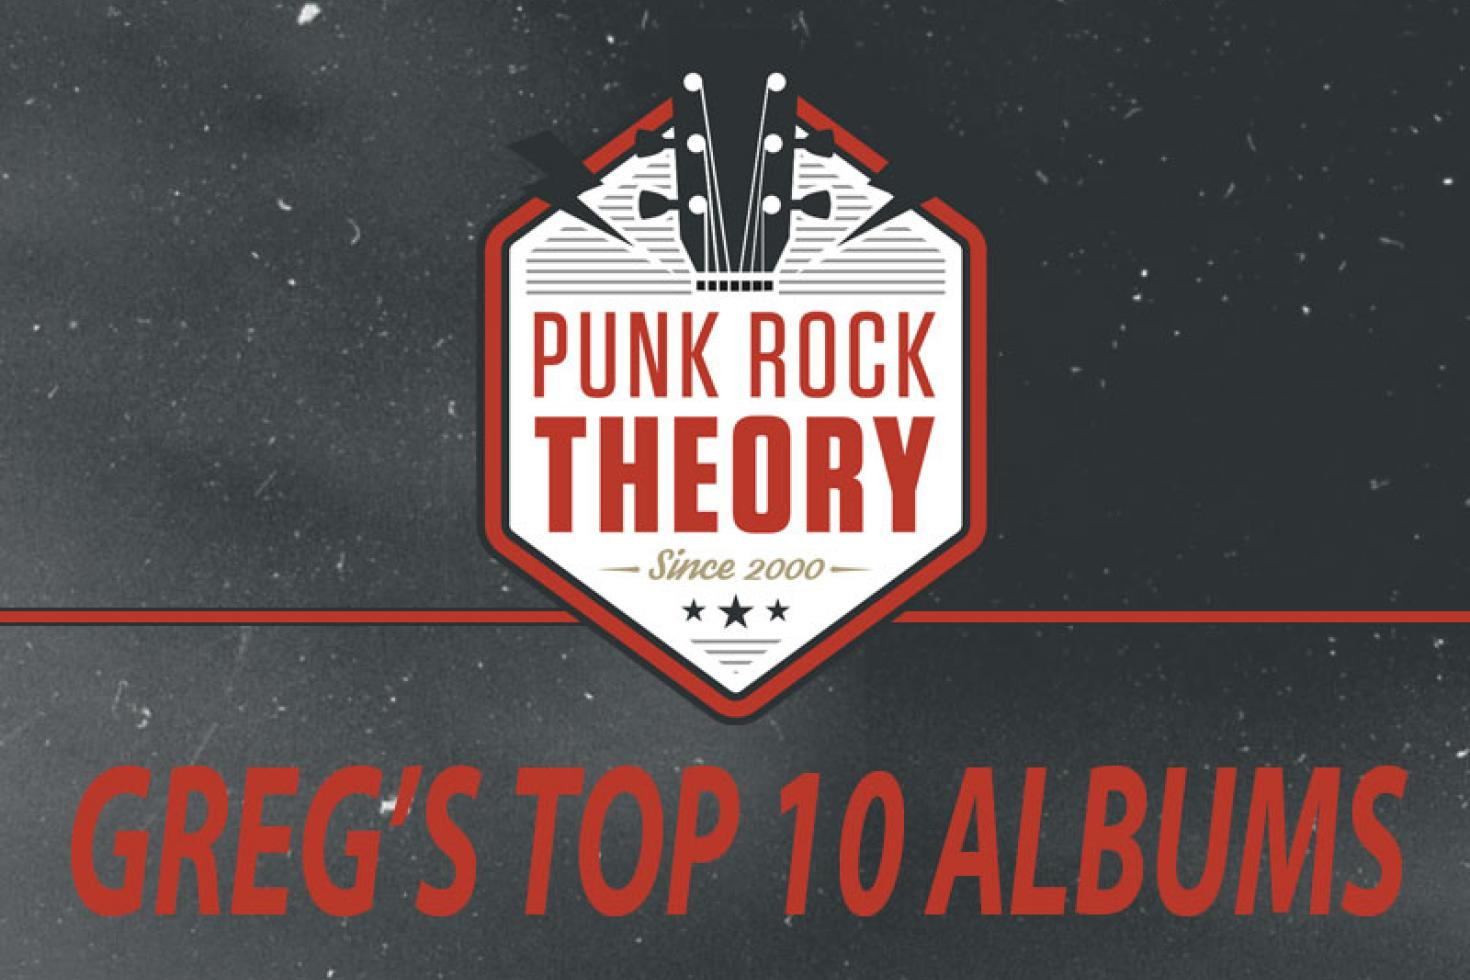 Gregory's top 10 albums of 2018